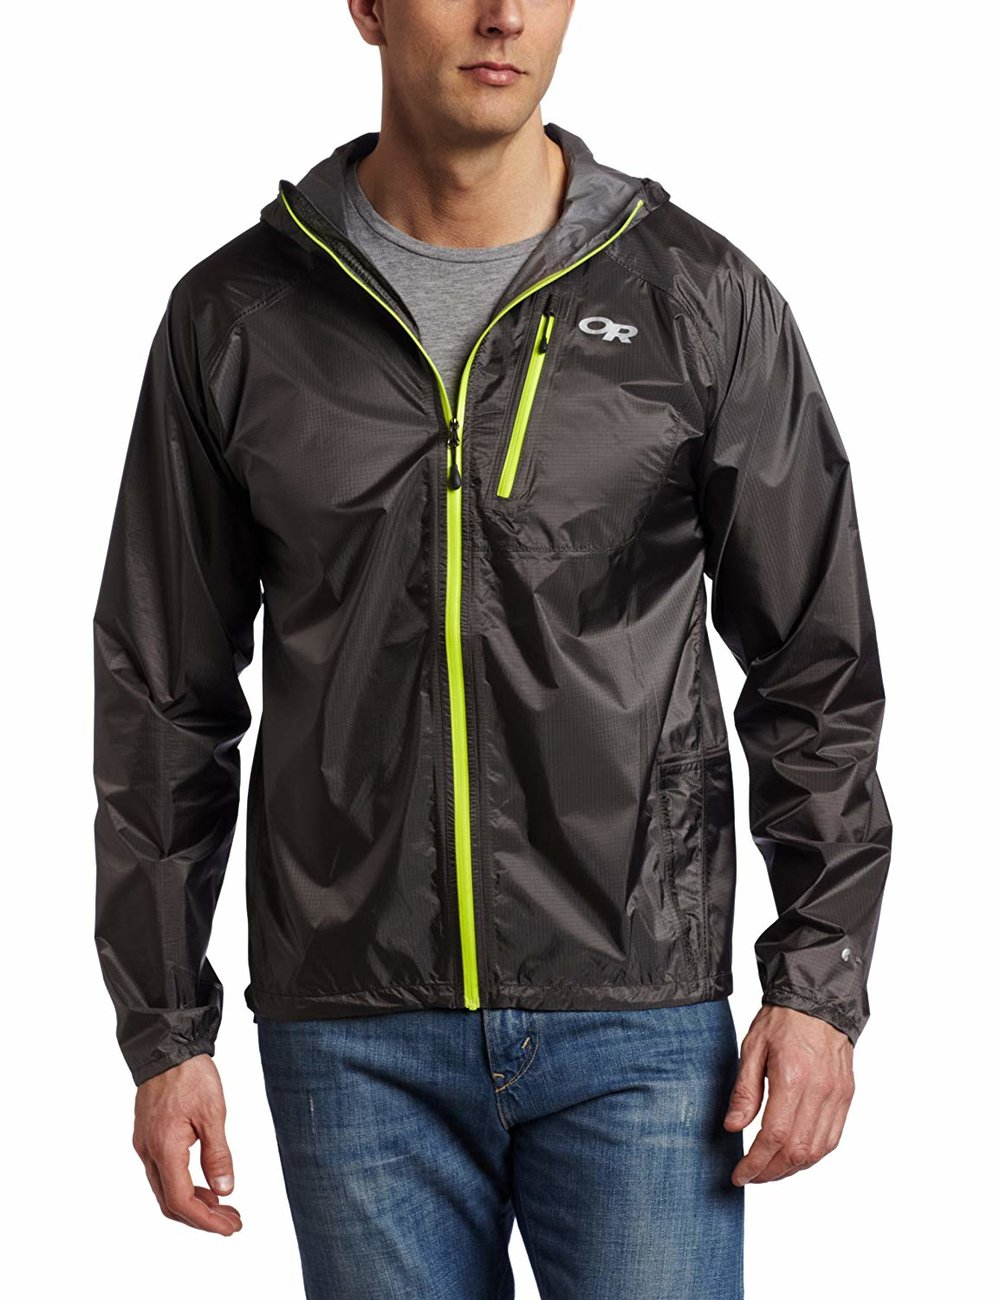 Rain Shell - Unless you know it's going to downpour, you don't need to go crazy here. A lightweight shell that will shed water for you is really all you need. This jacket from Outdoor Research has great reviews and is crazy lightweight.As the weather gets worse in the year, step up the game on rain gear.